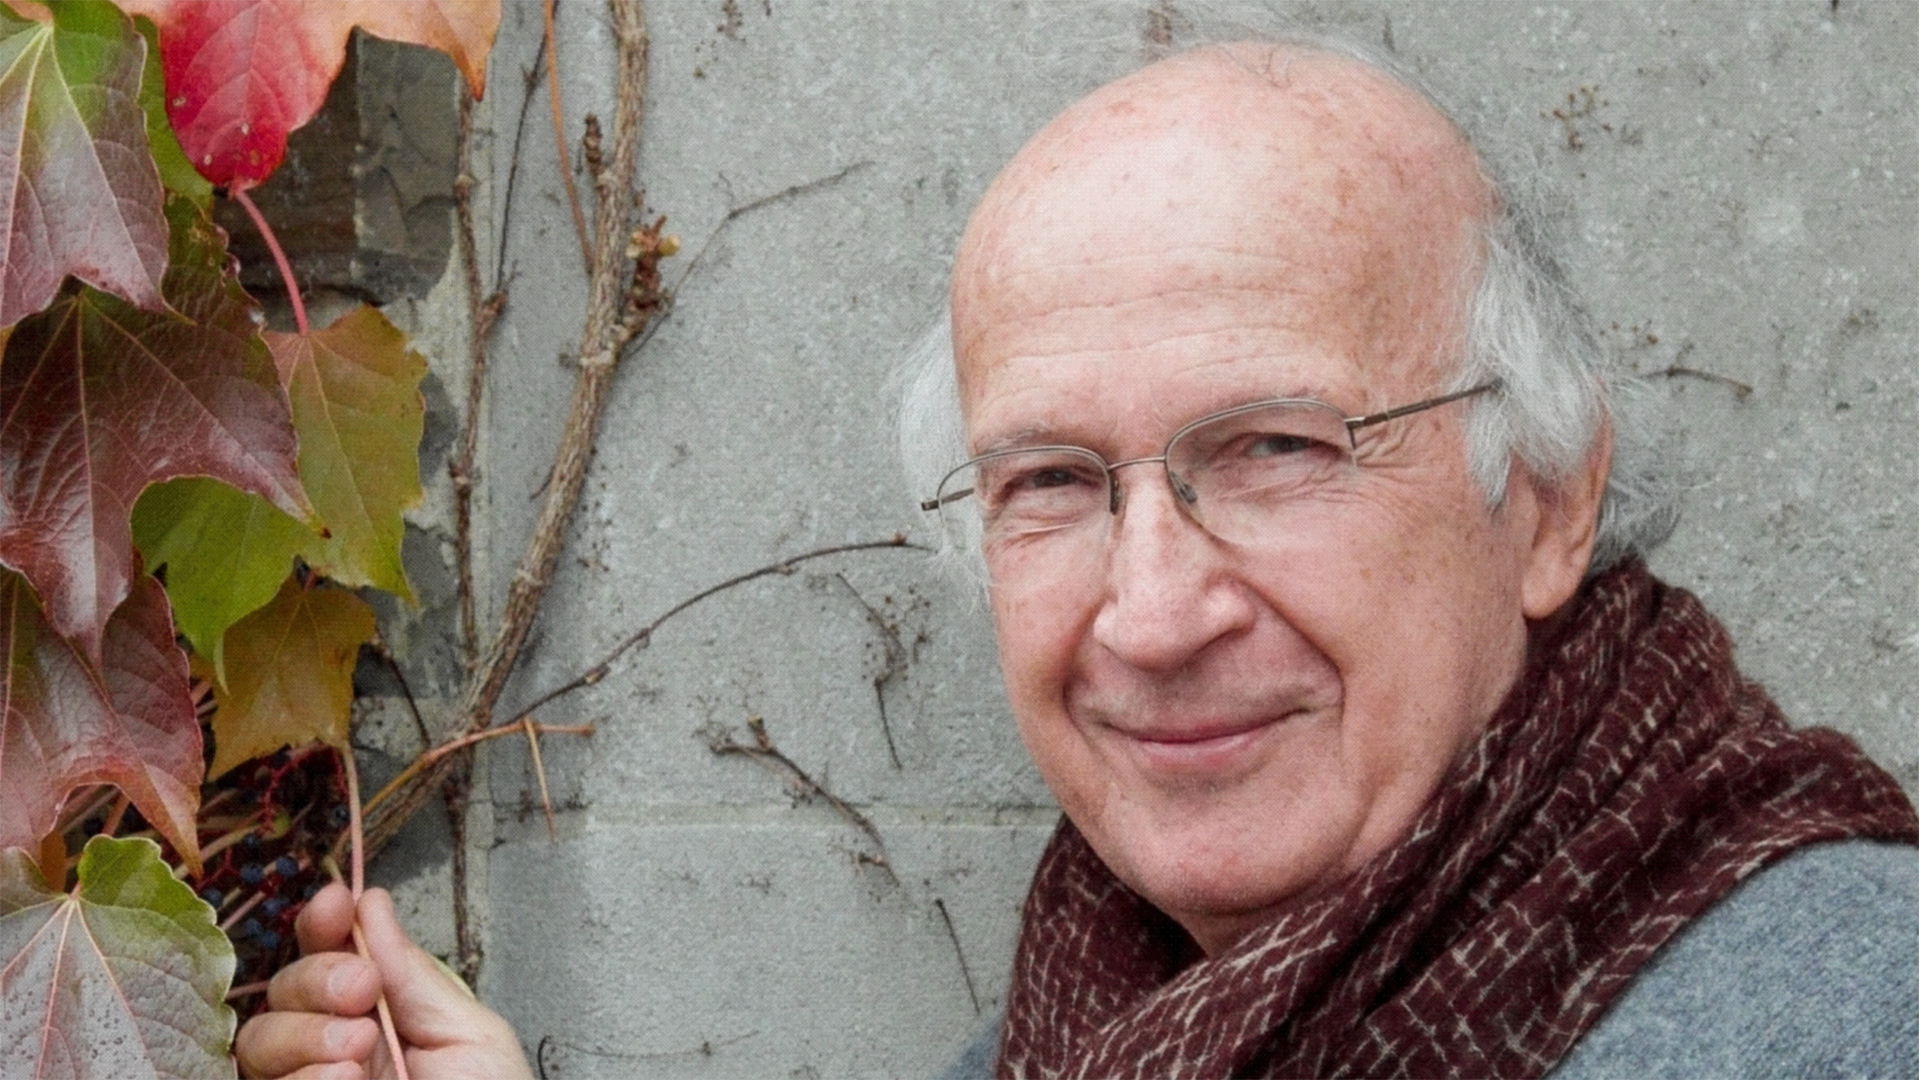 Between Art and Science: A Conversation with Roald Hoffmann, Nobel Prize-winner, scientist, playwright and poet